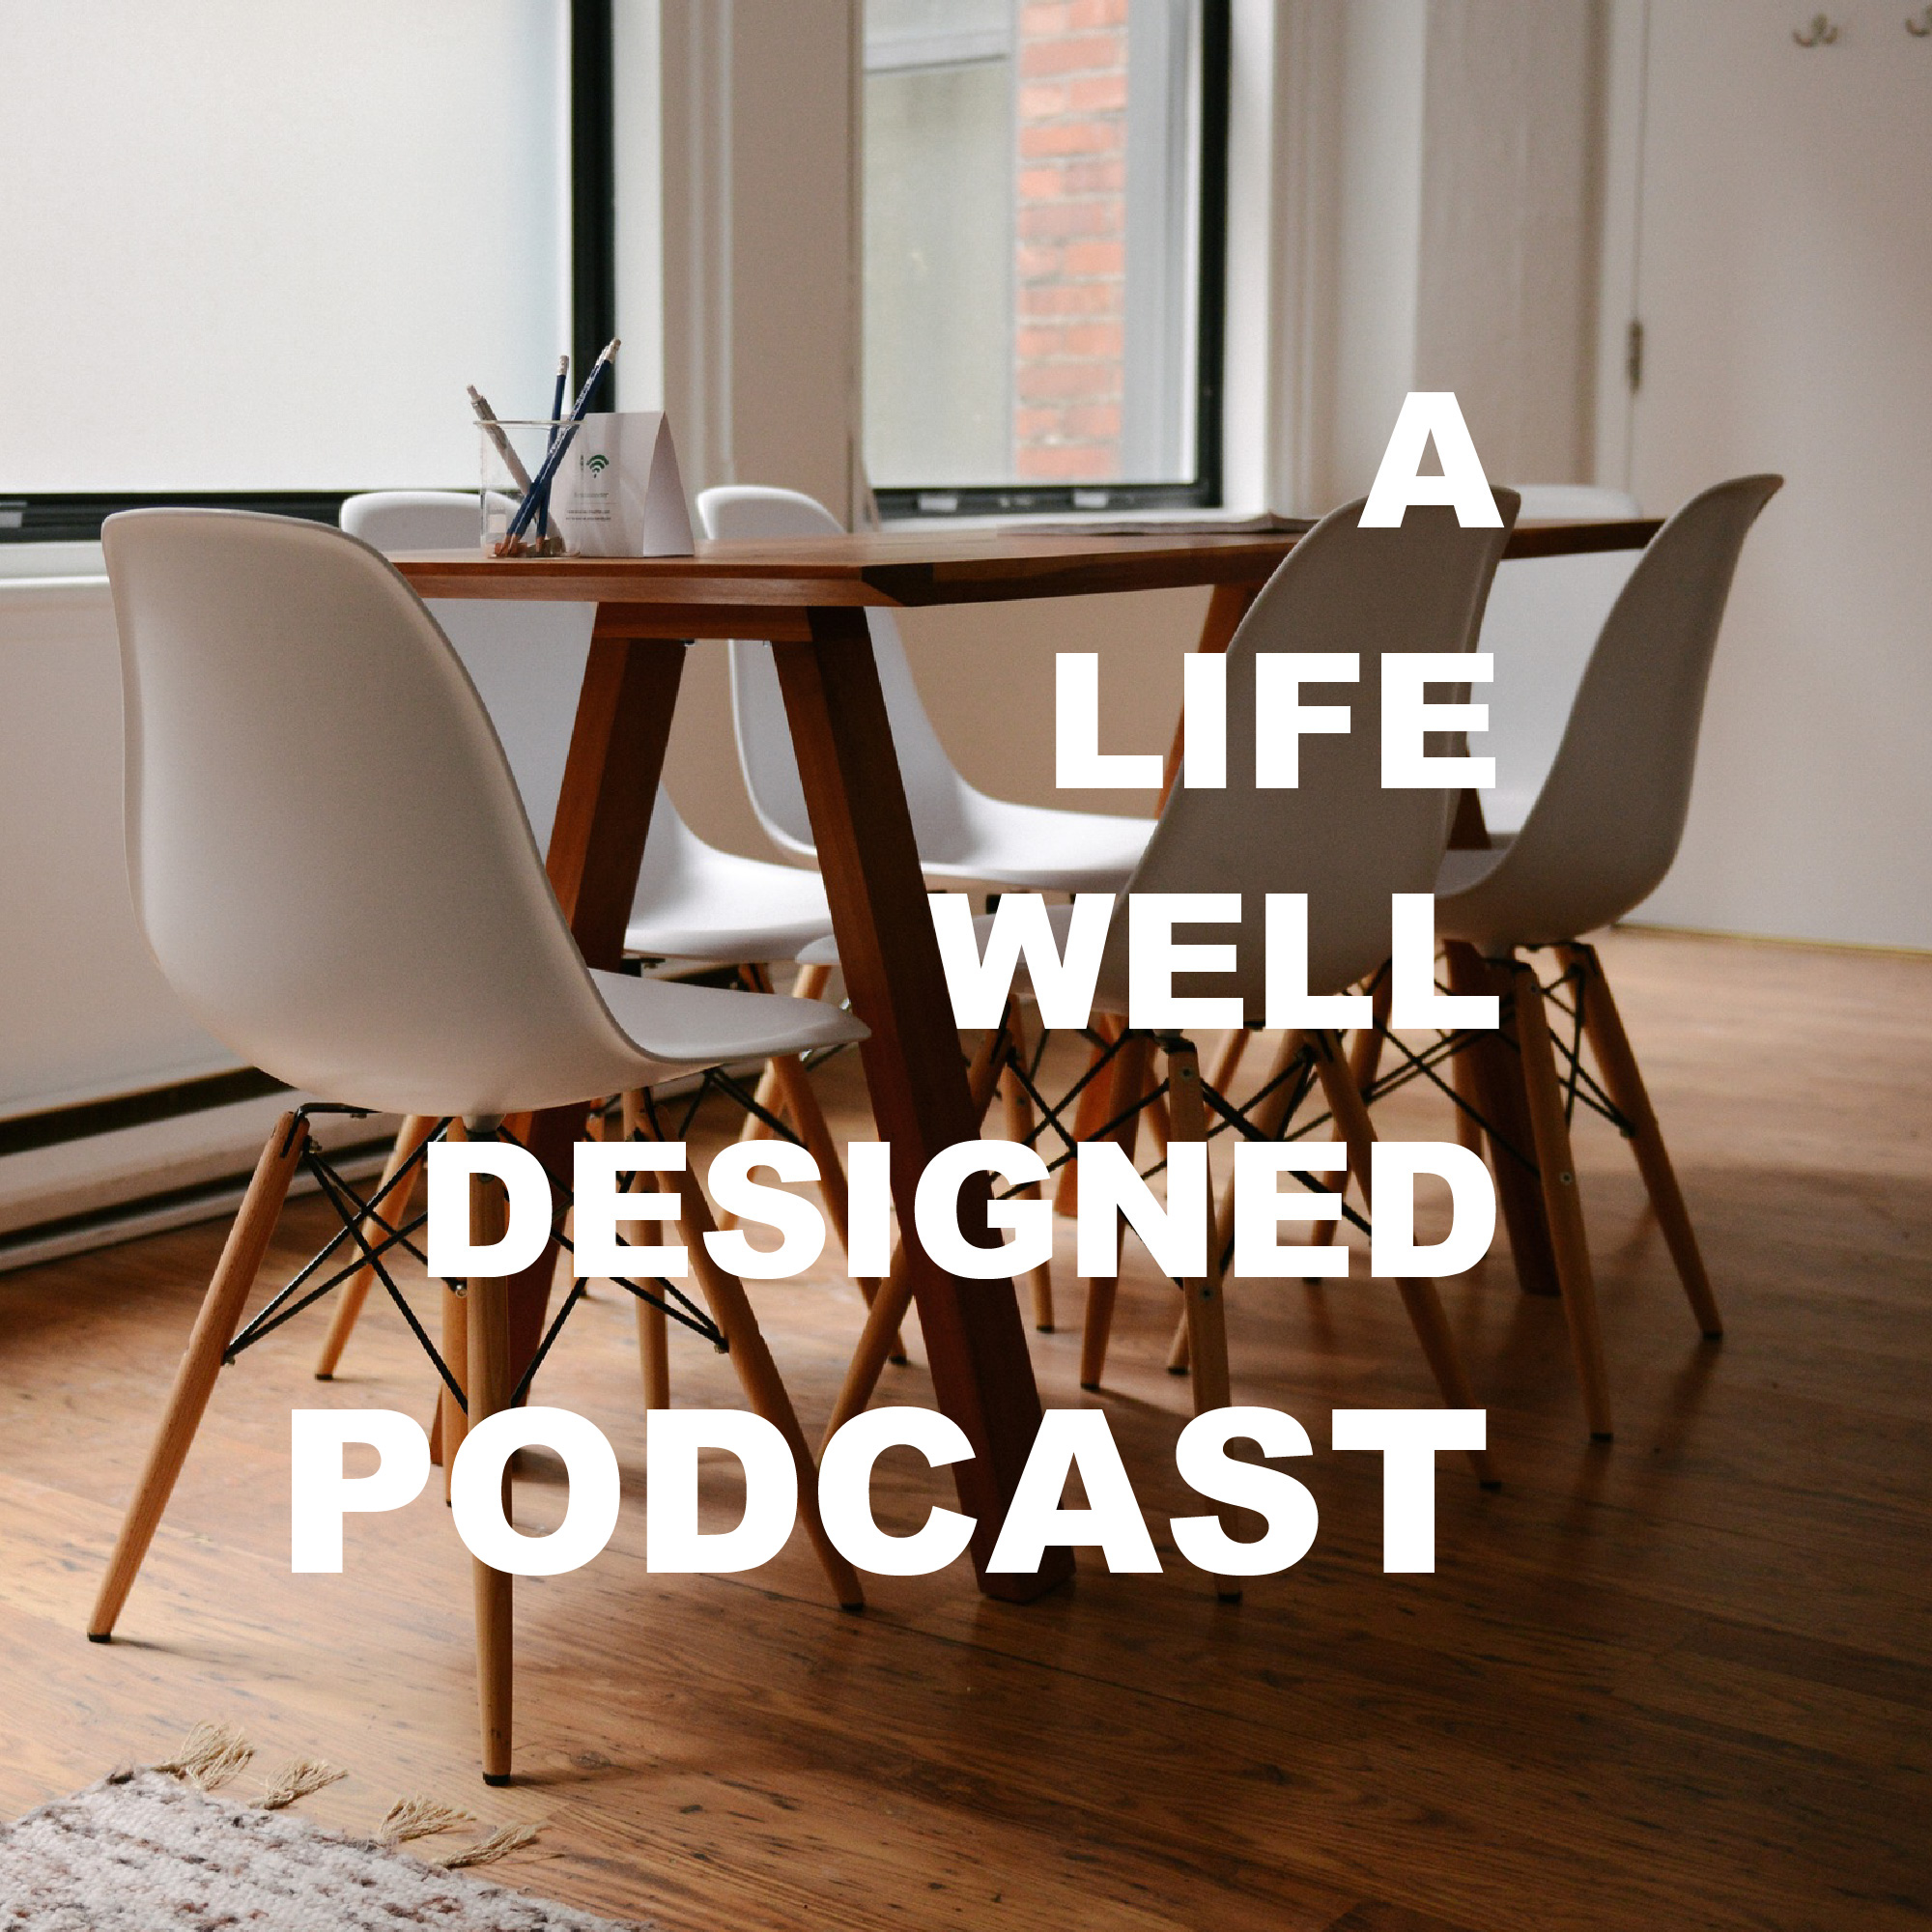 A Life Well Designed Podcast- Lifestyle design for career, relationships, and business